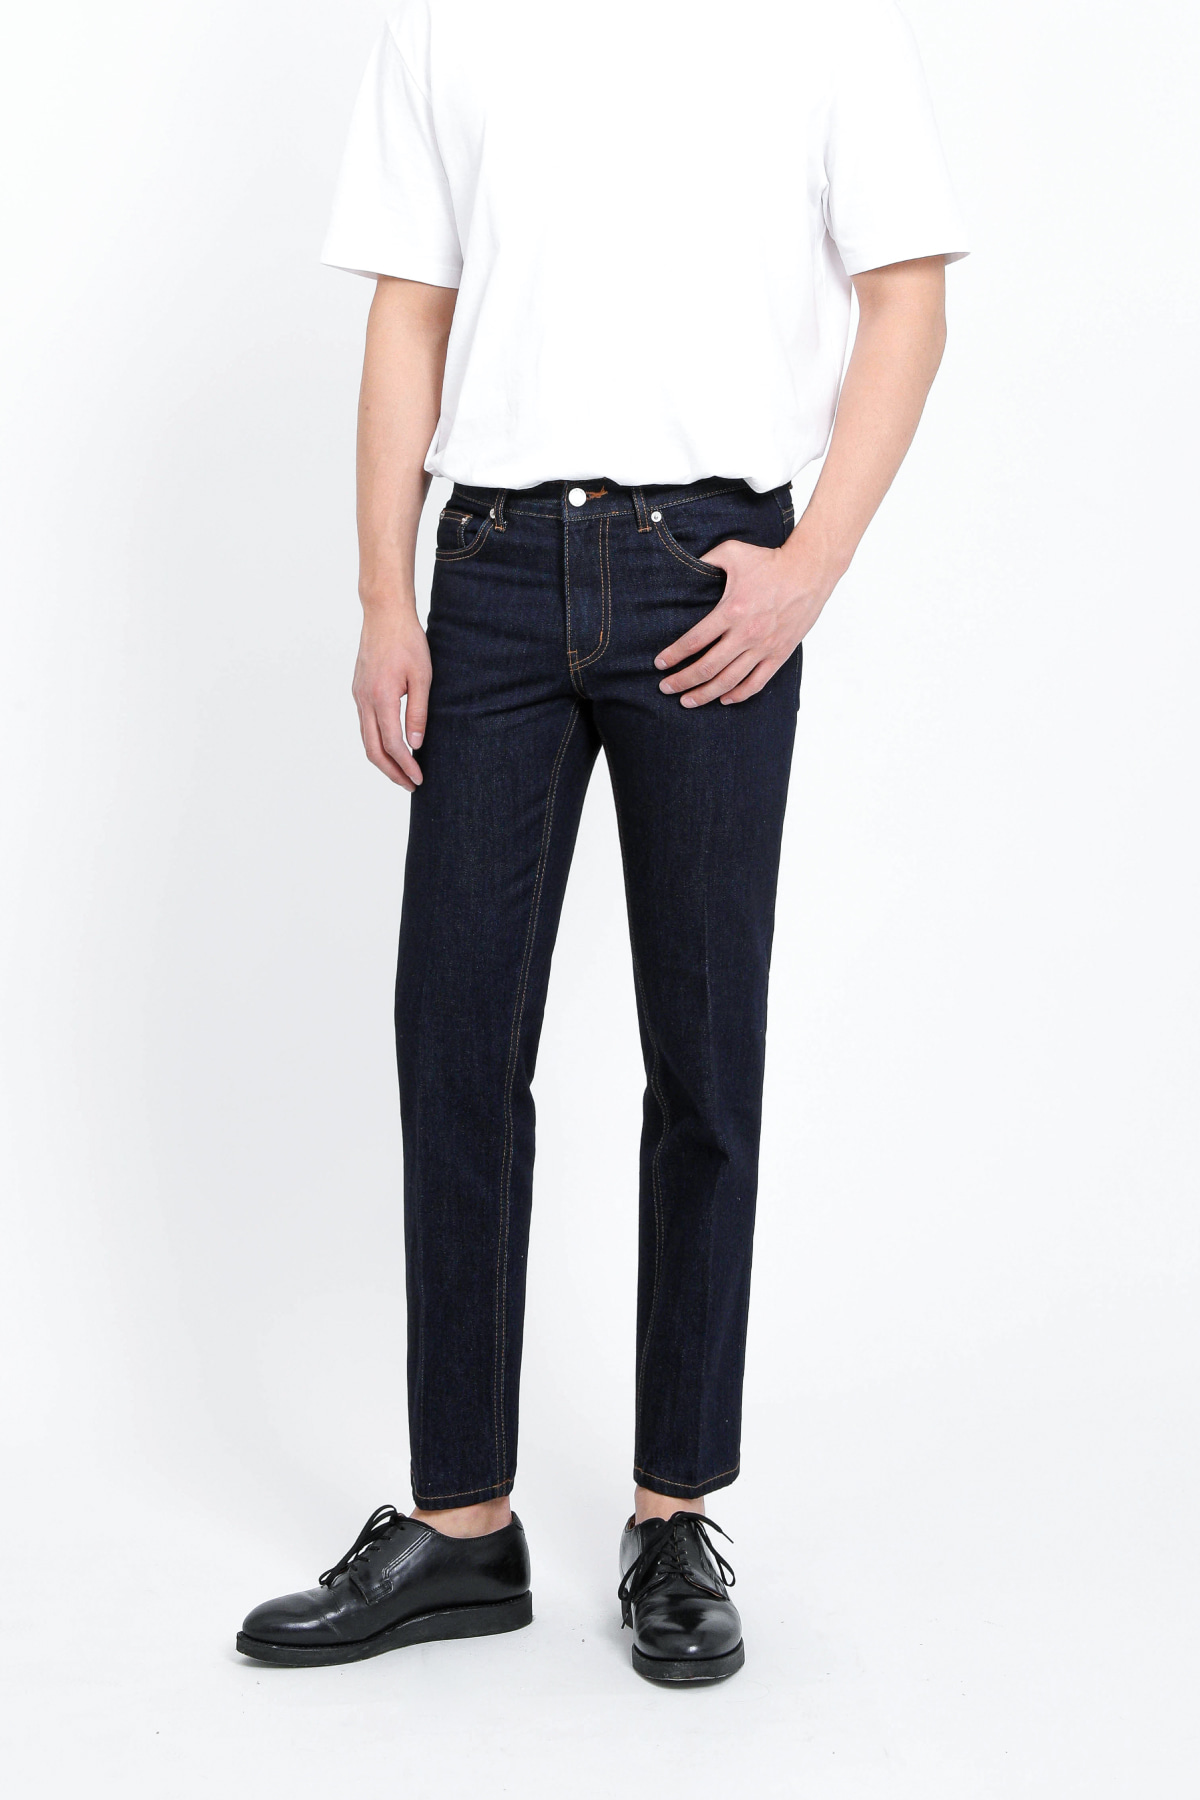 #0128 nonwashed jp slim standard fit